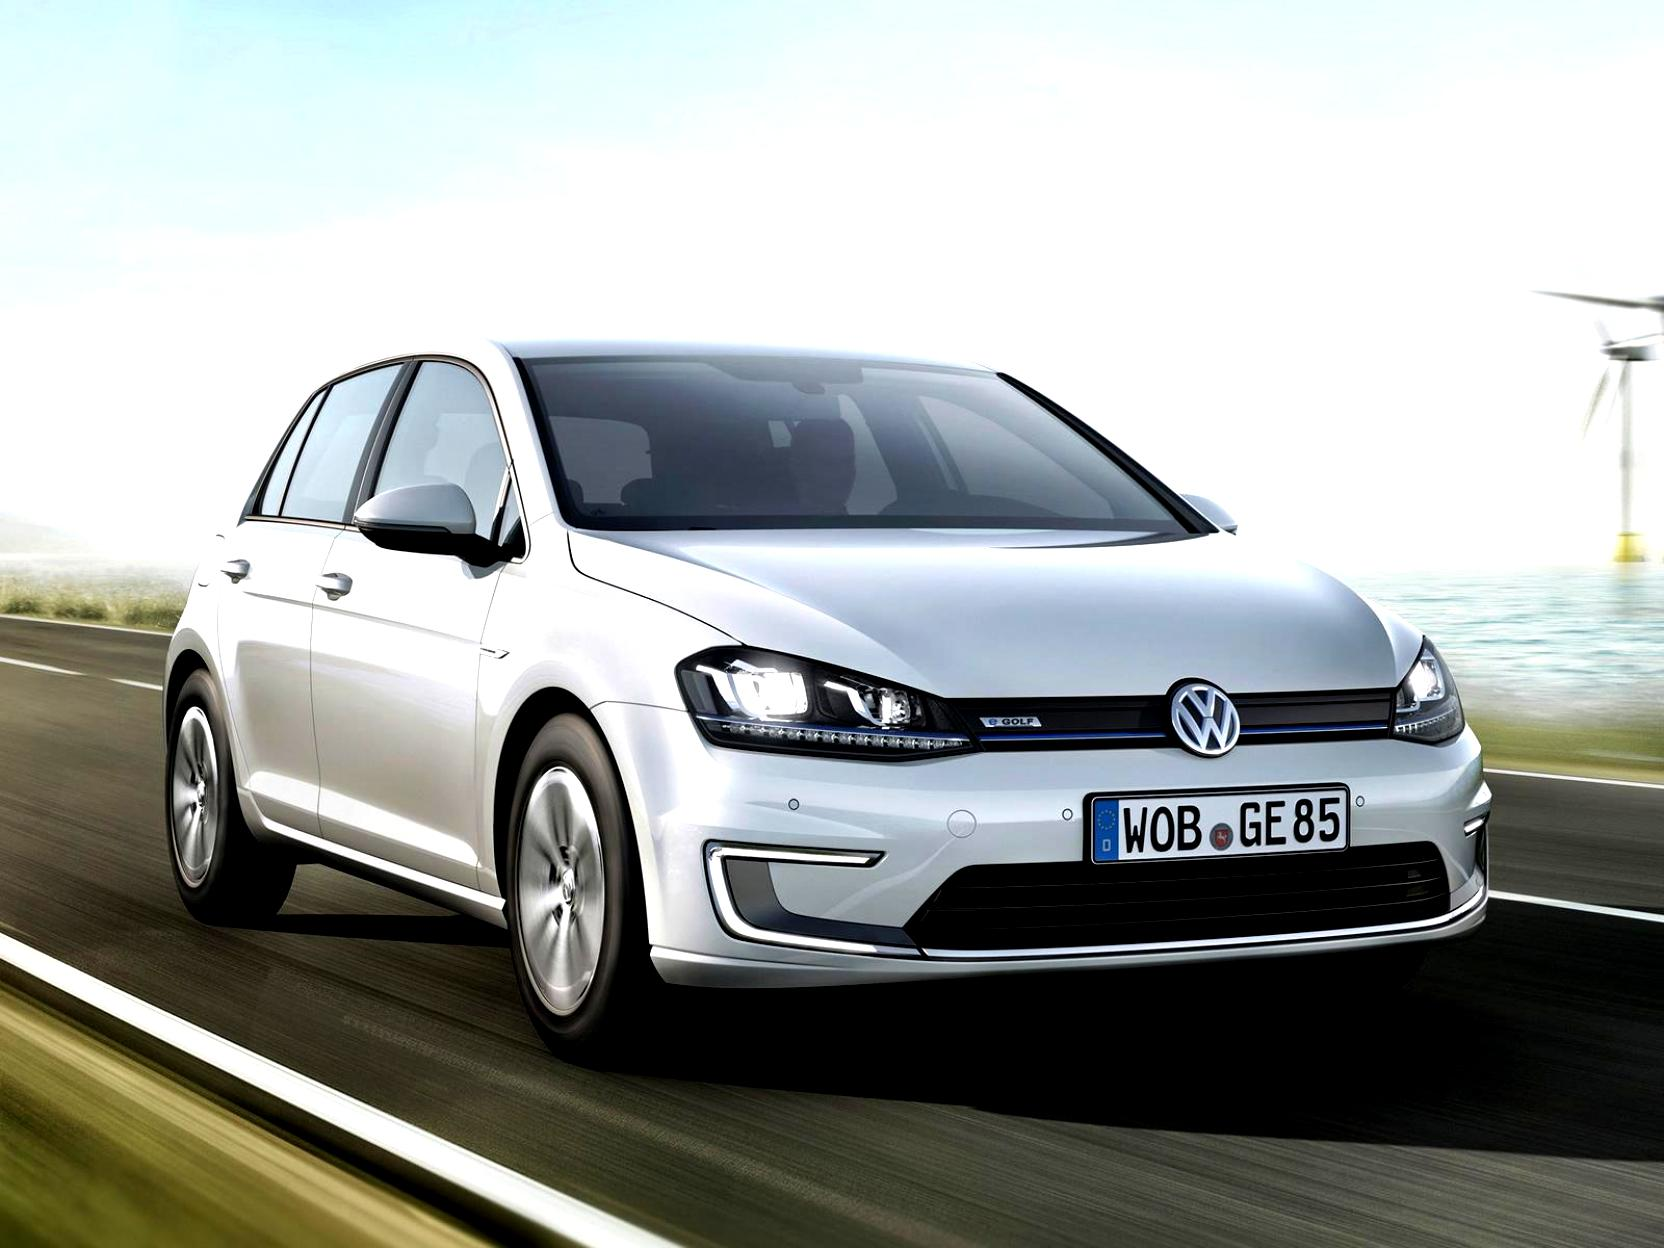 Volkswagen E-Golf 2014 #25